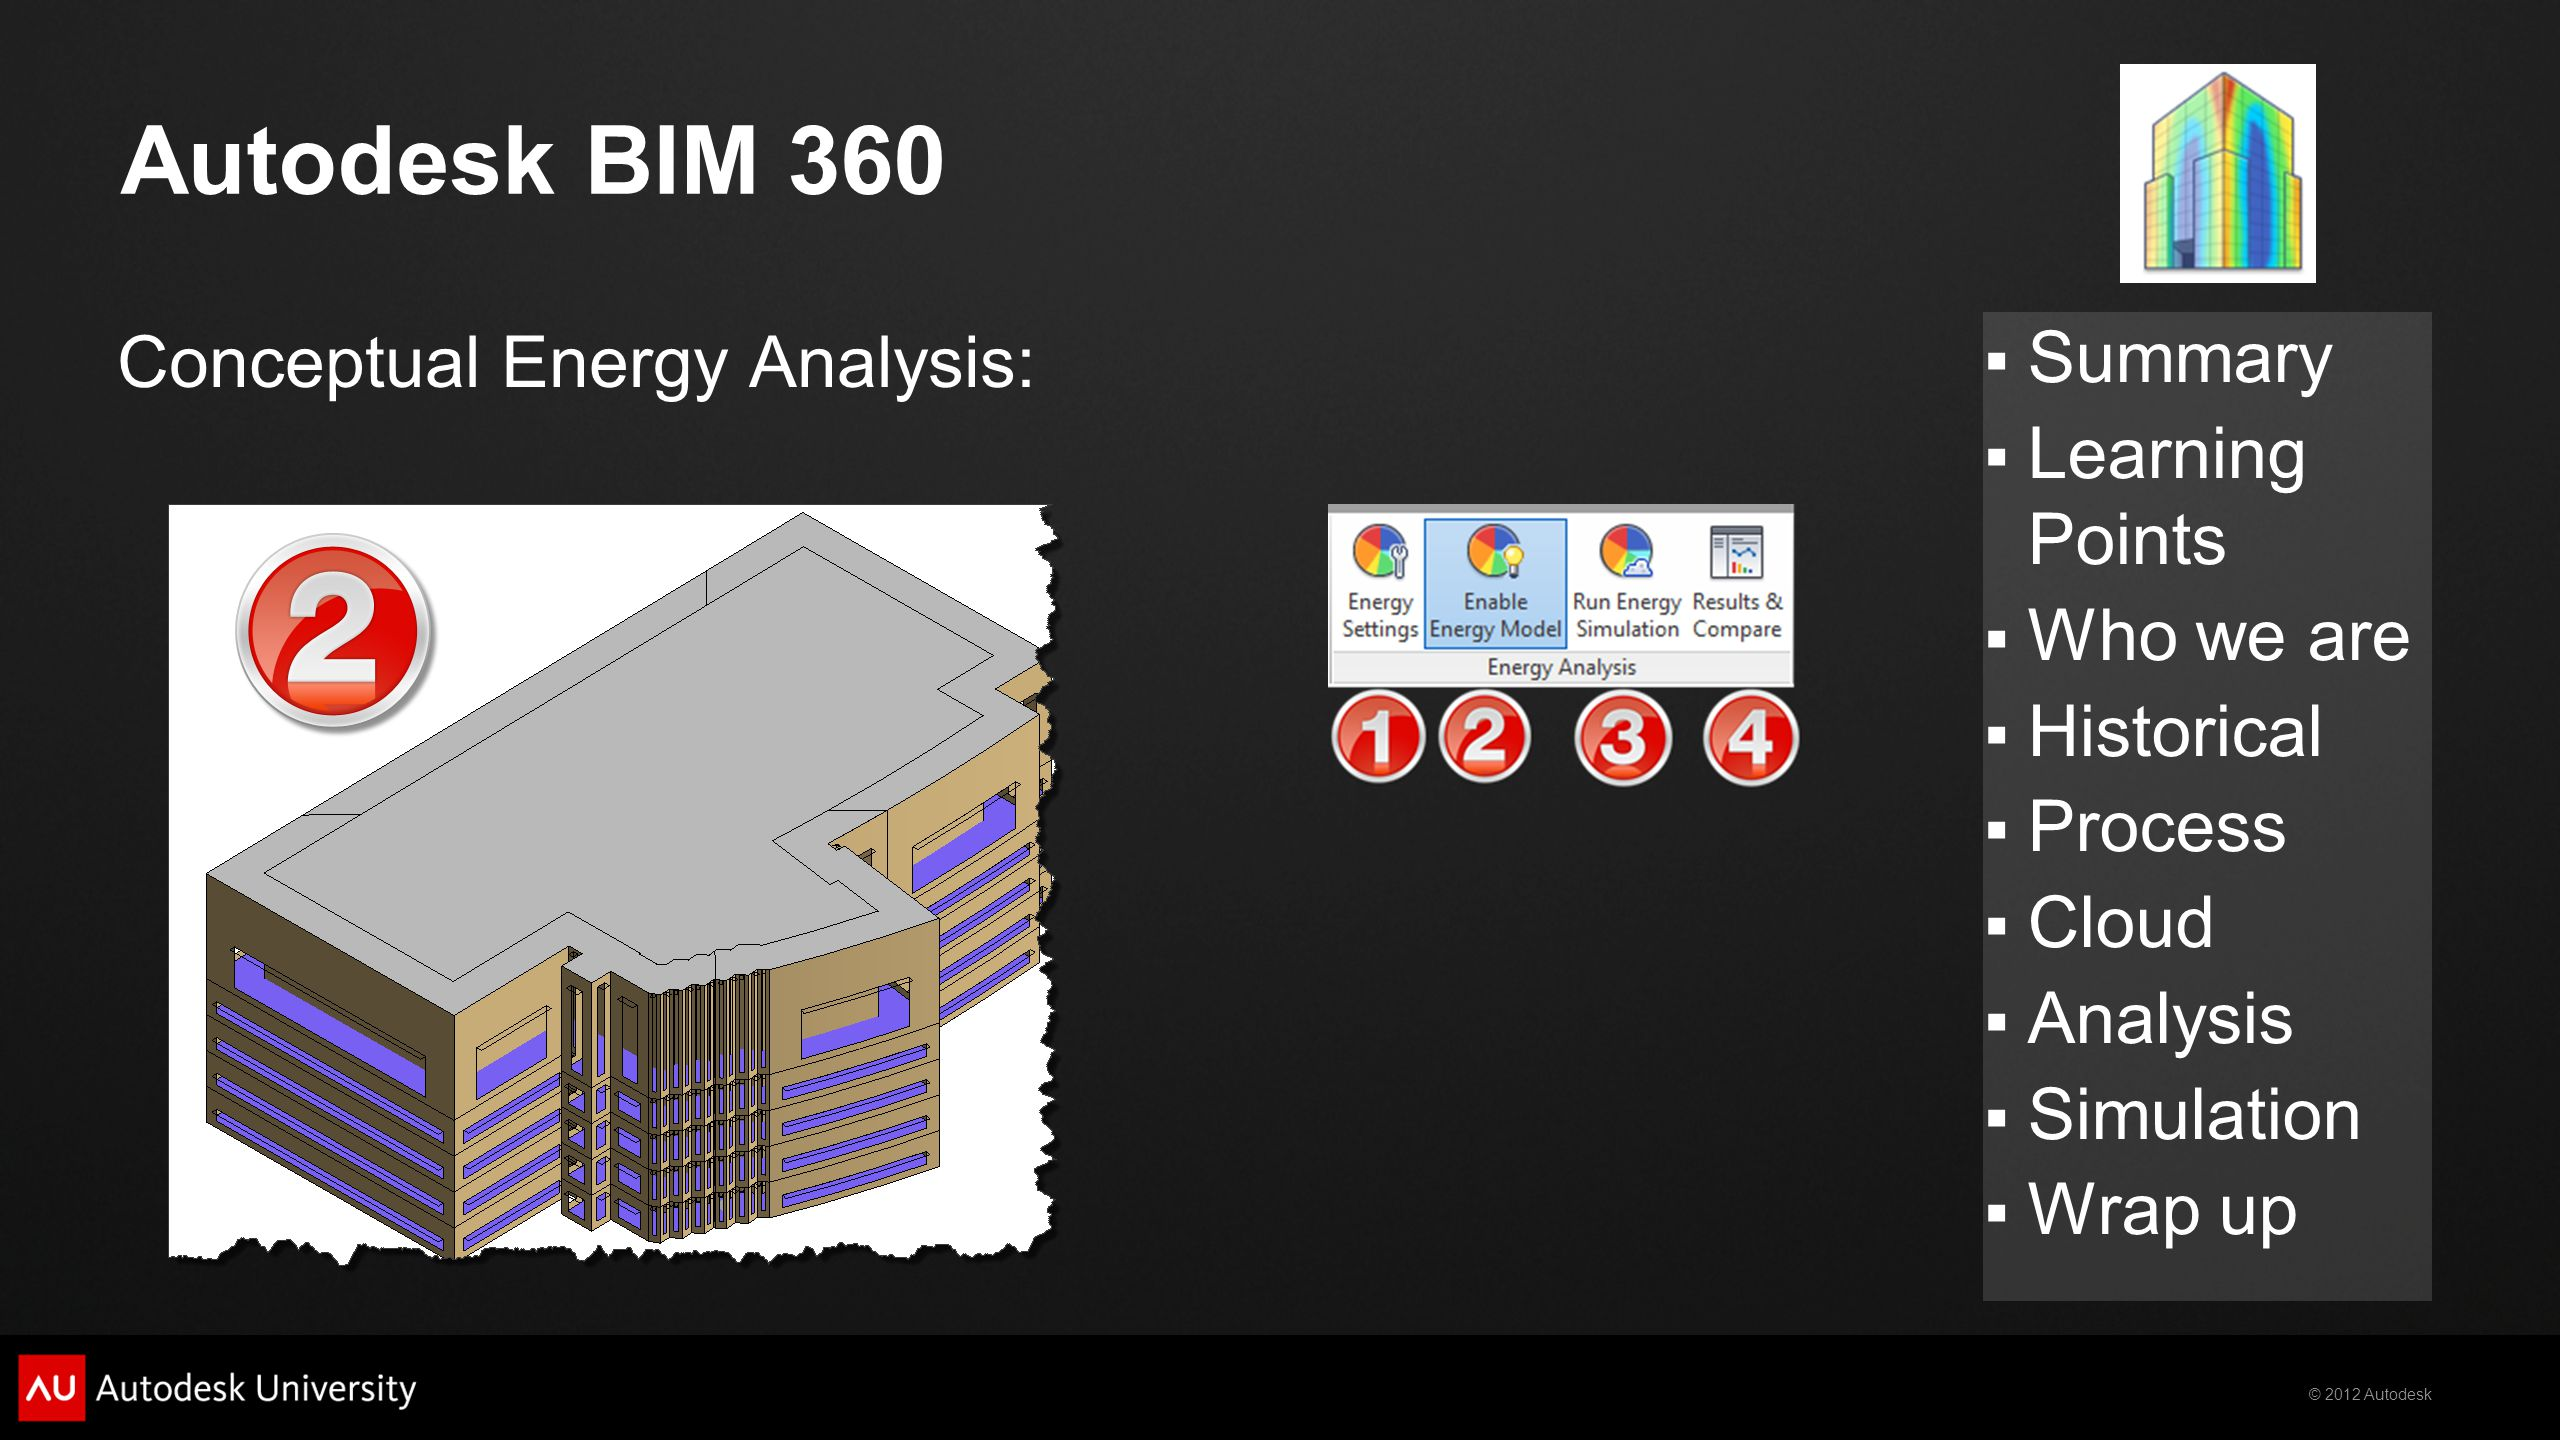 © 2012 Autodesk  Summary  Learning Points  Who we are  Historical  Process  Cloud  Analysis  Simulation  Wrap up Autodesk BIM 360 Conceptual Energy Analysis: